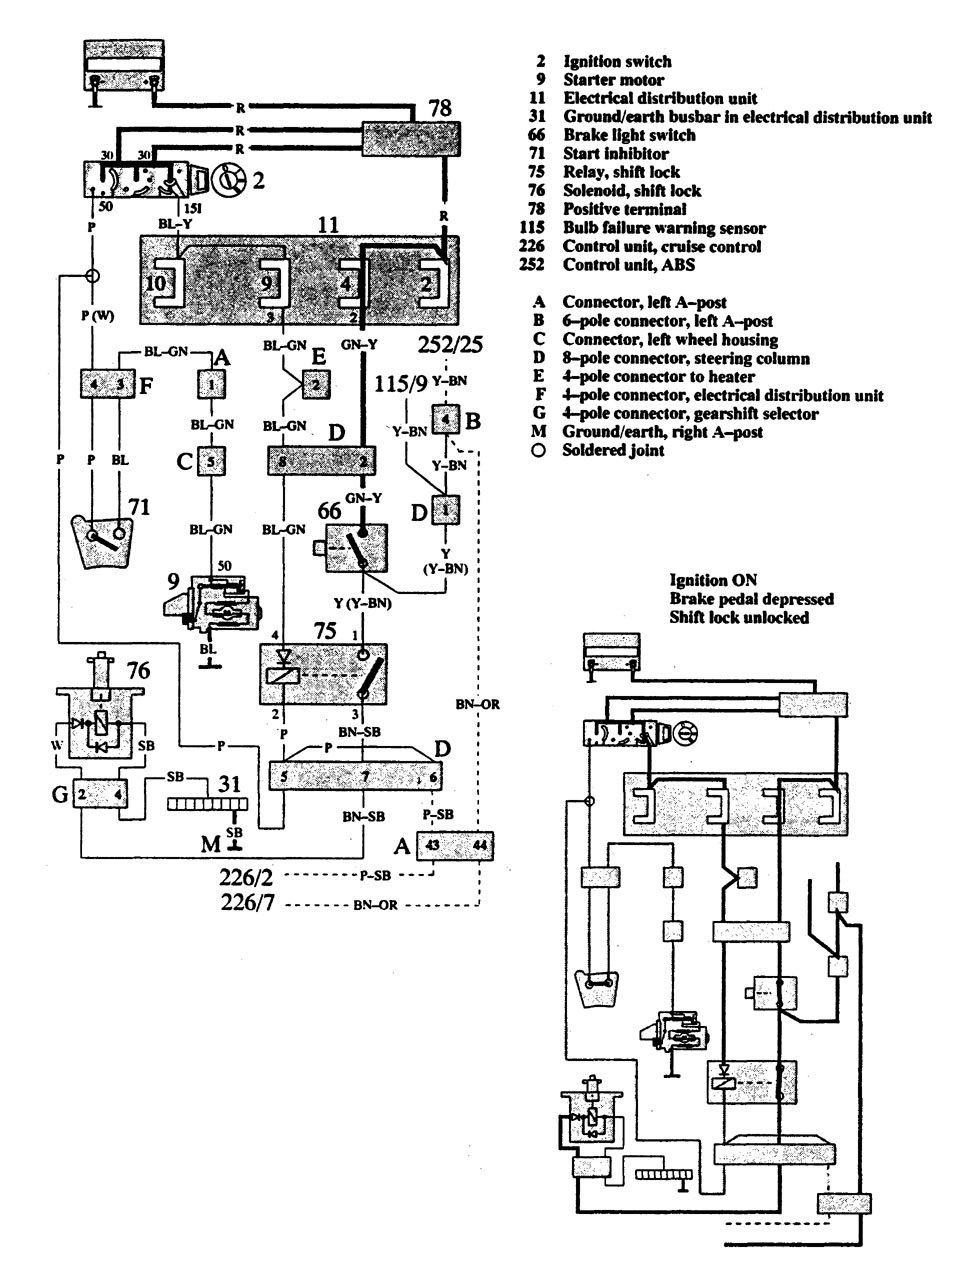 93 volvo 940 wiring diagram free download